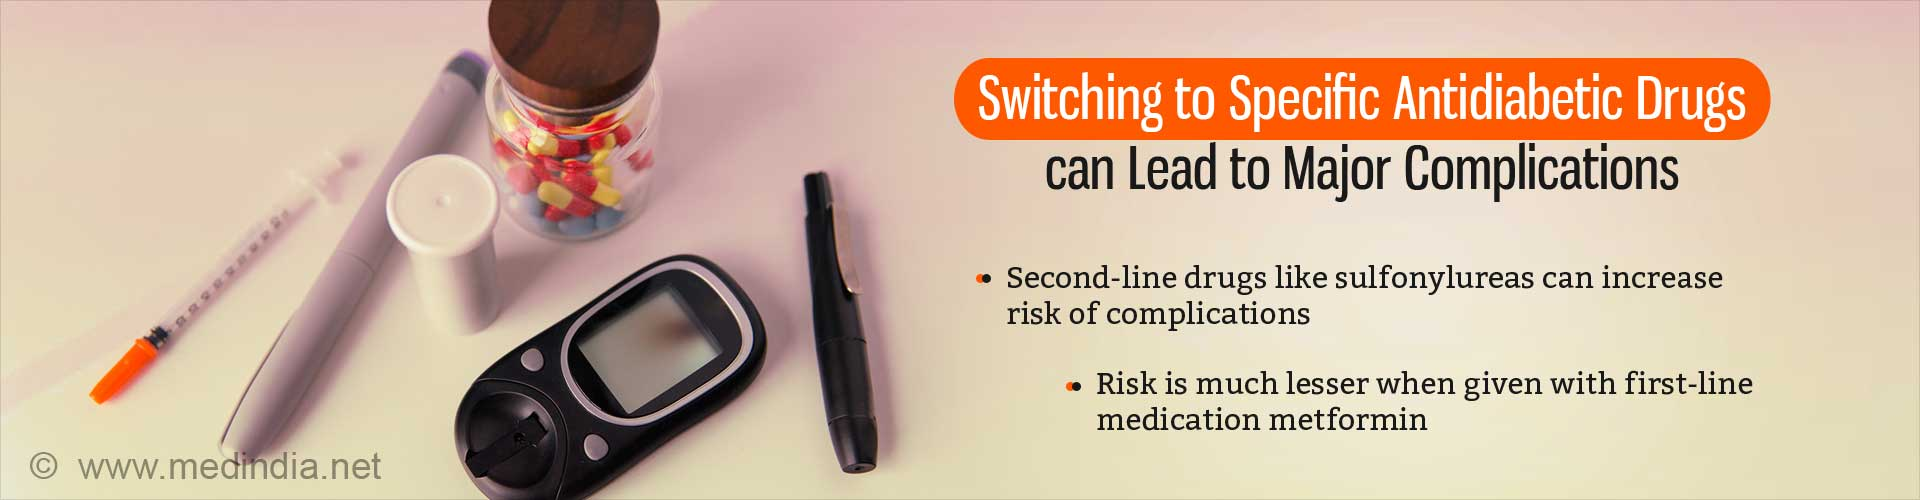 Changing Completely to Second-line Type 2 Diabetic Drugs Increases Risk of Major Complications